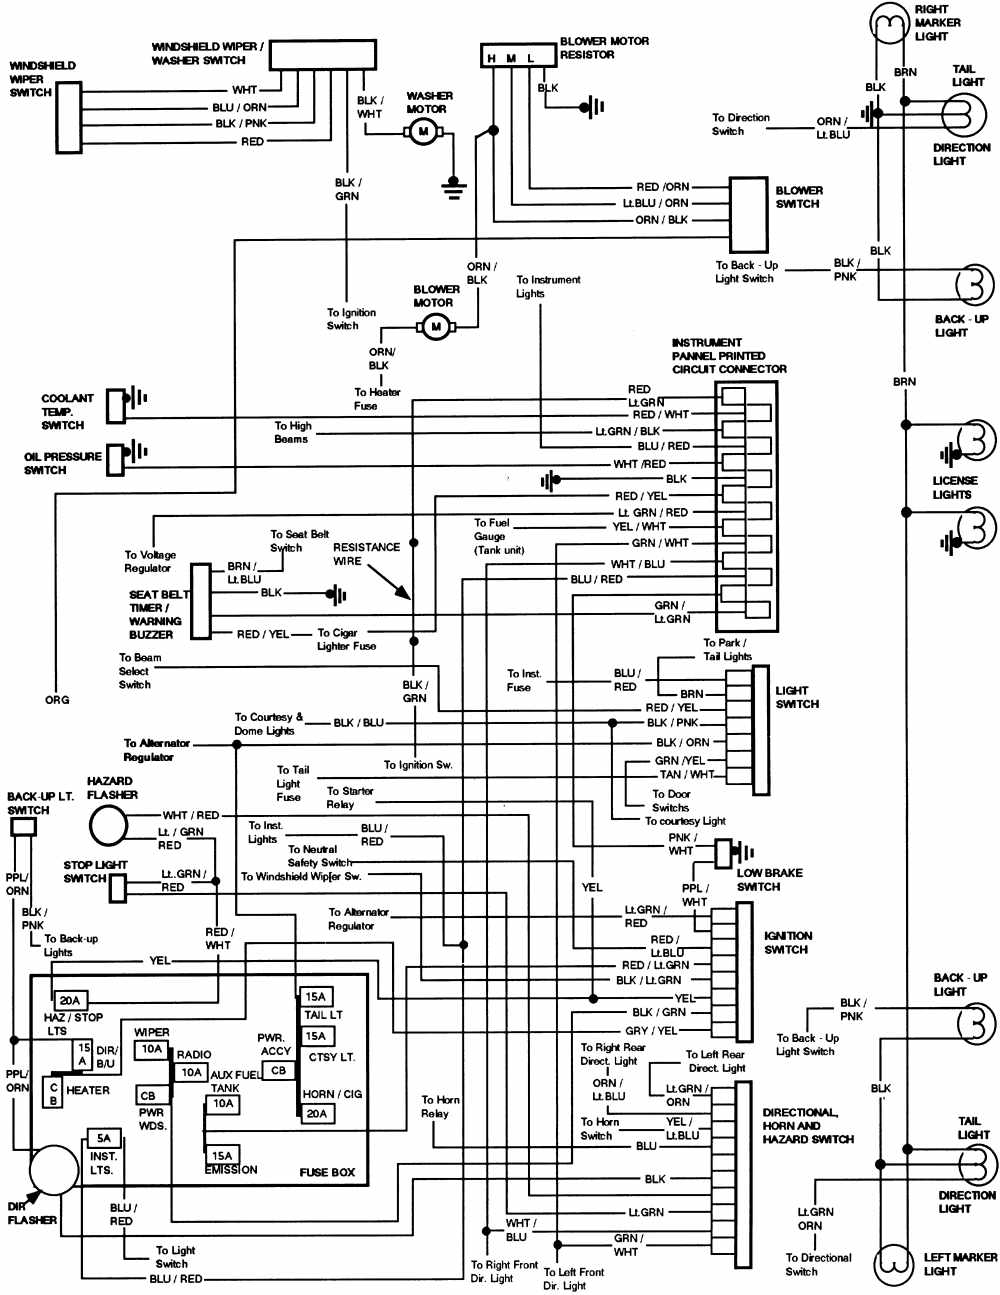 1987 Peterbilt Wiring Diagram